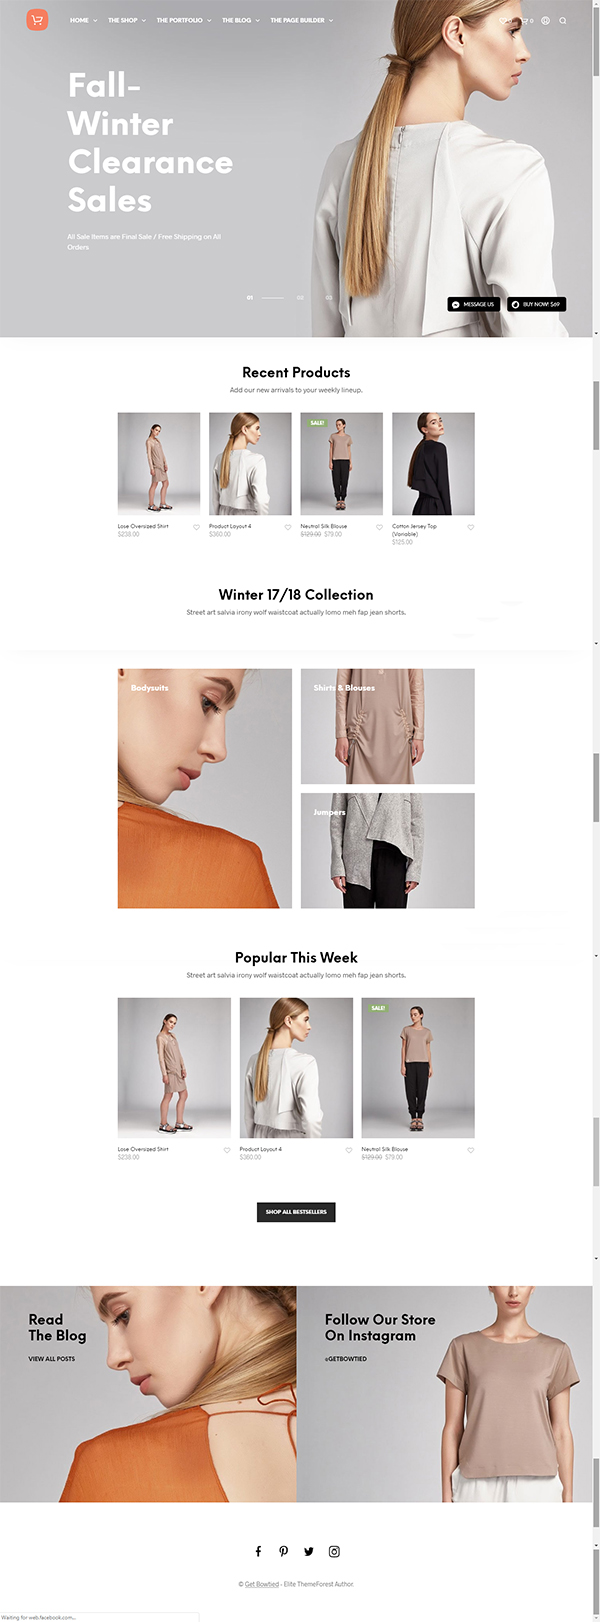 Shopkeeper - eCommerce WP Theme for WooCommerce